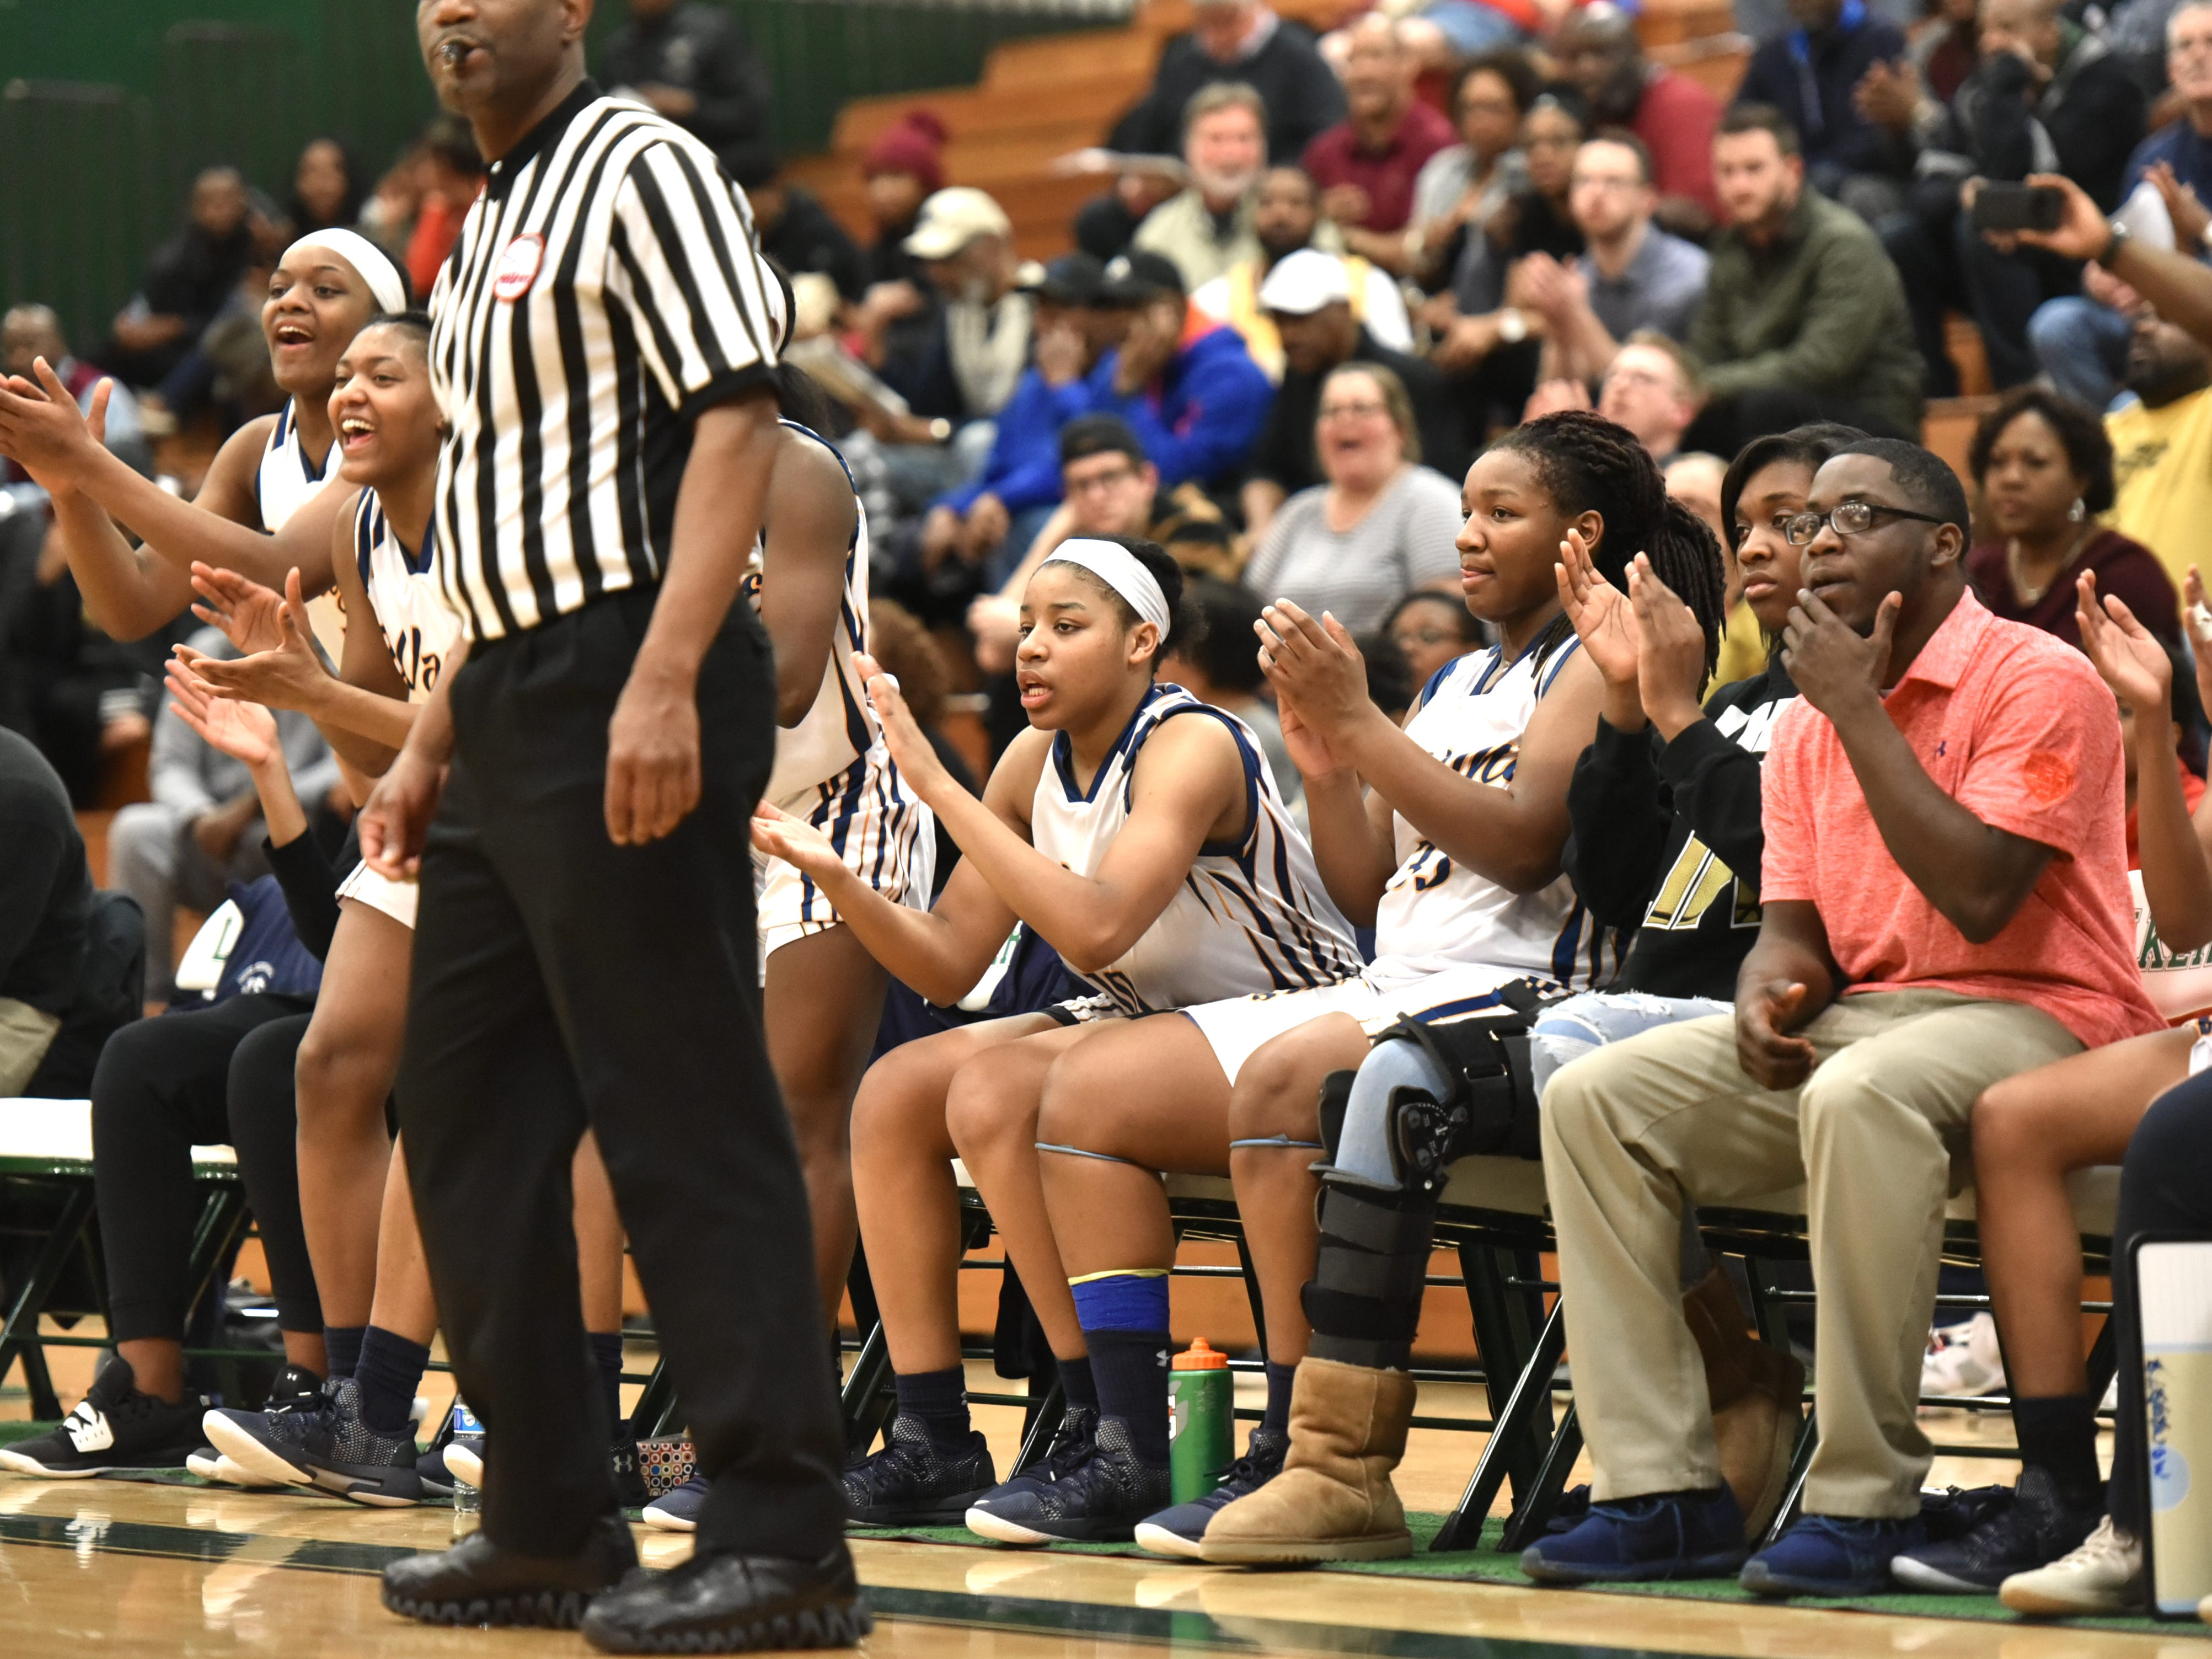 Late in the fourth, with most of the starters on the bench, the Wayne Memorial Zebras applaud the play of their teammates on the floor.